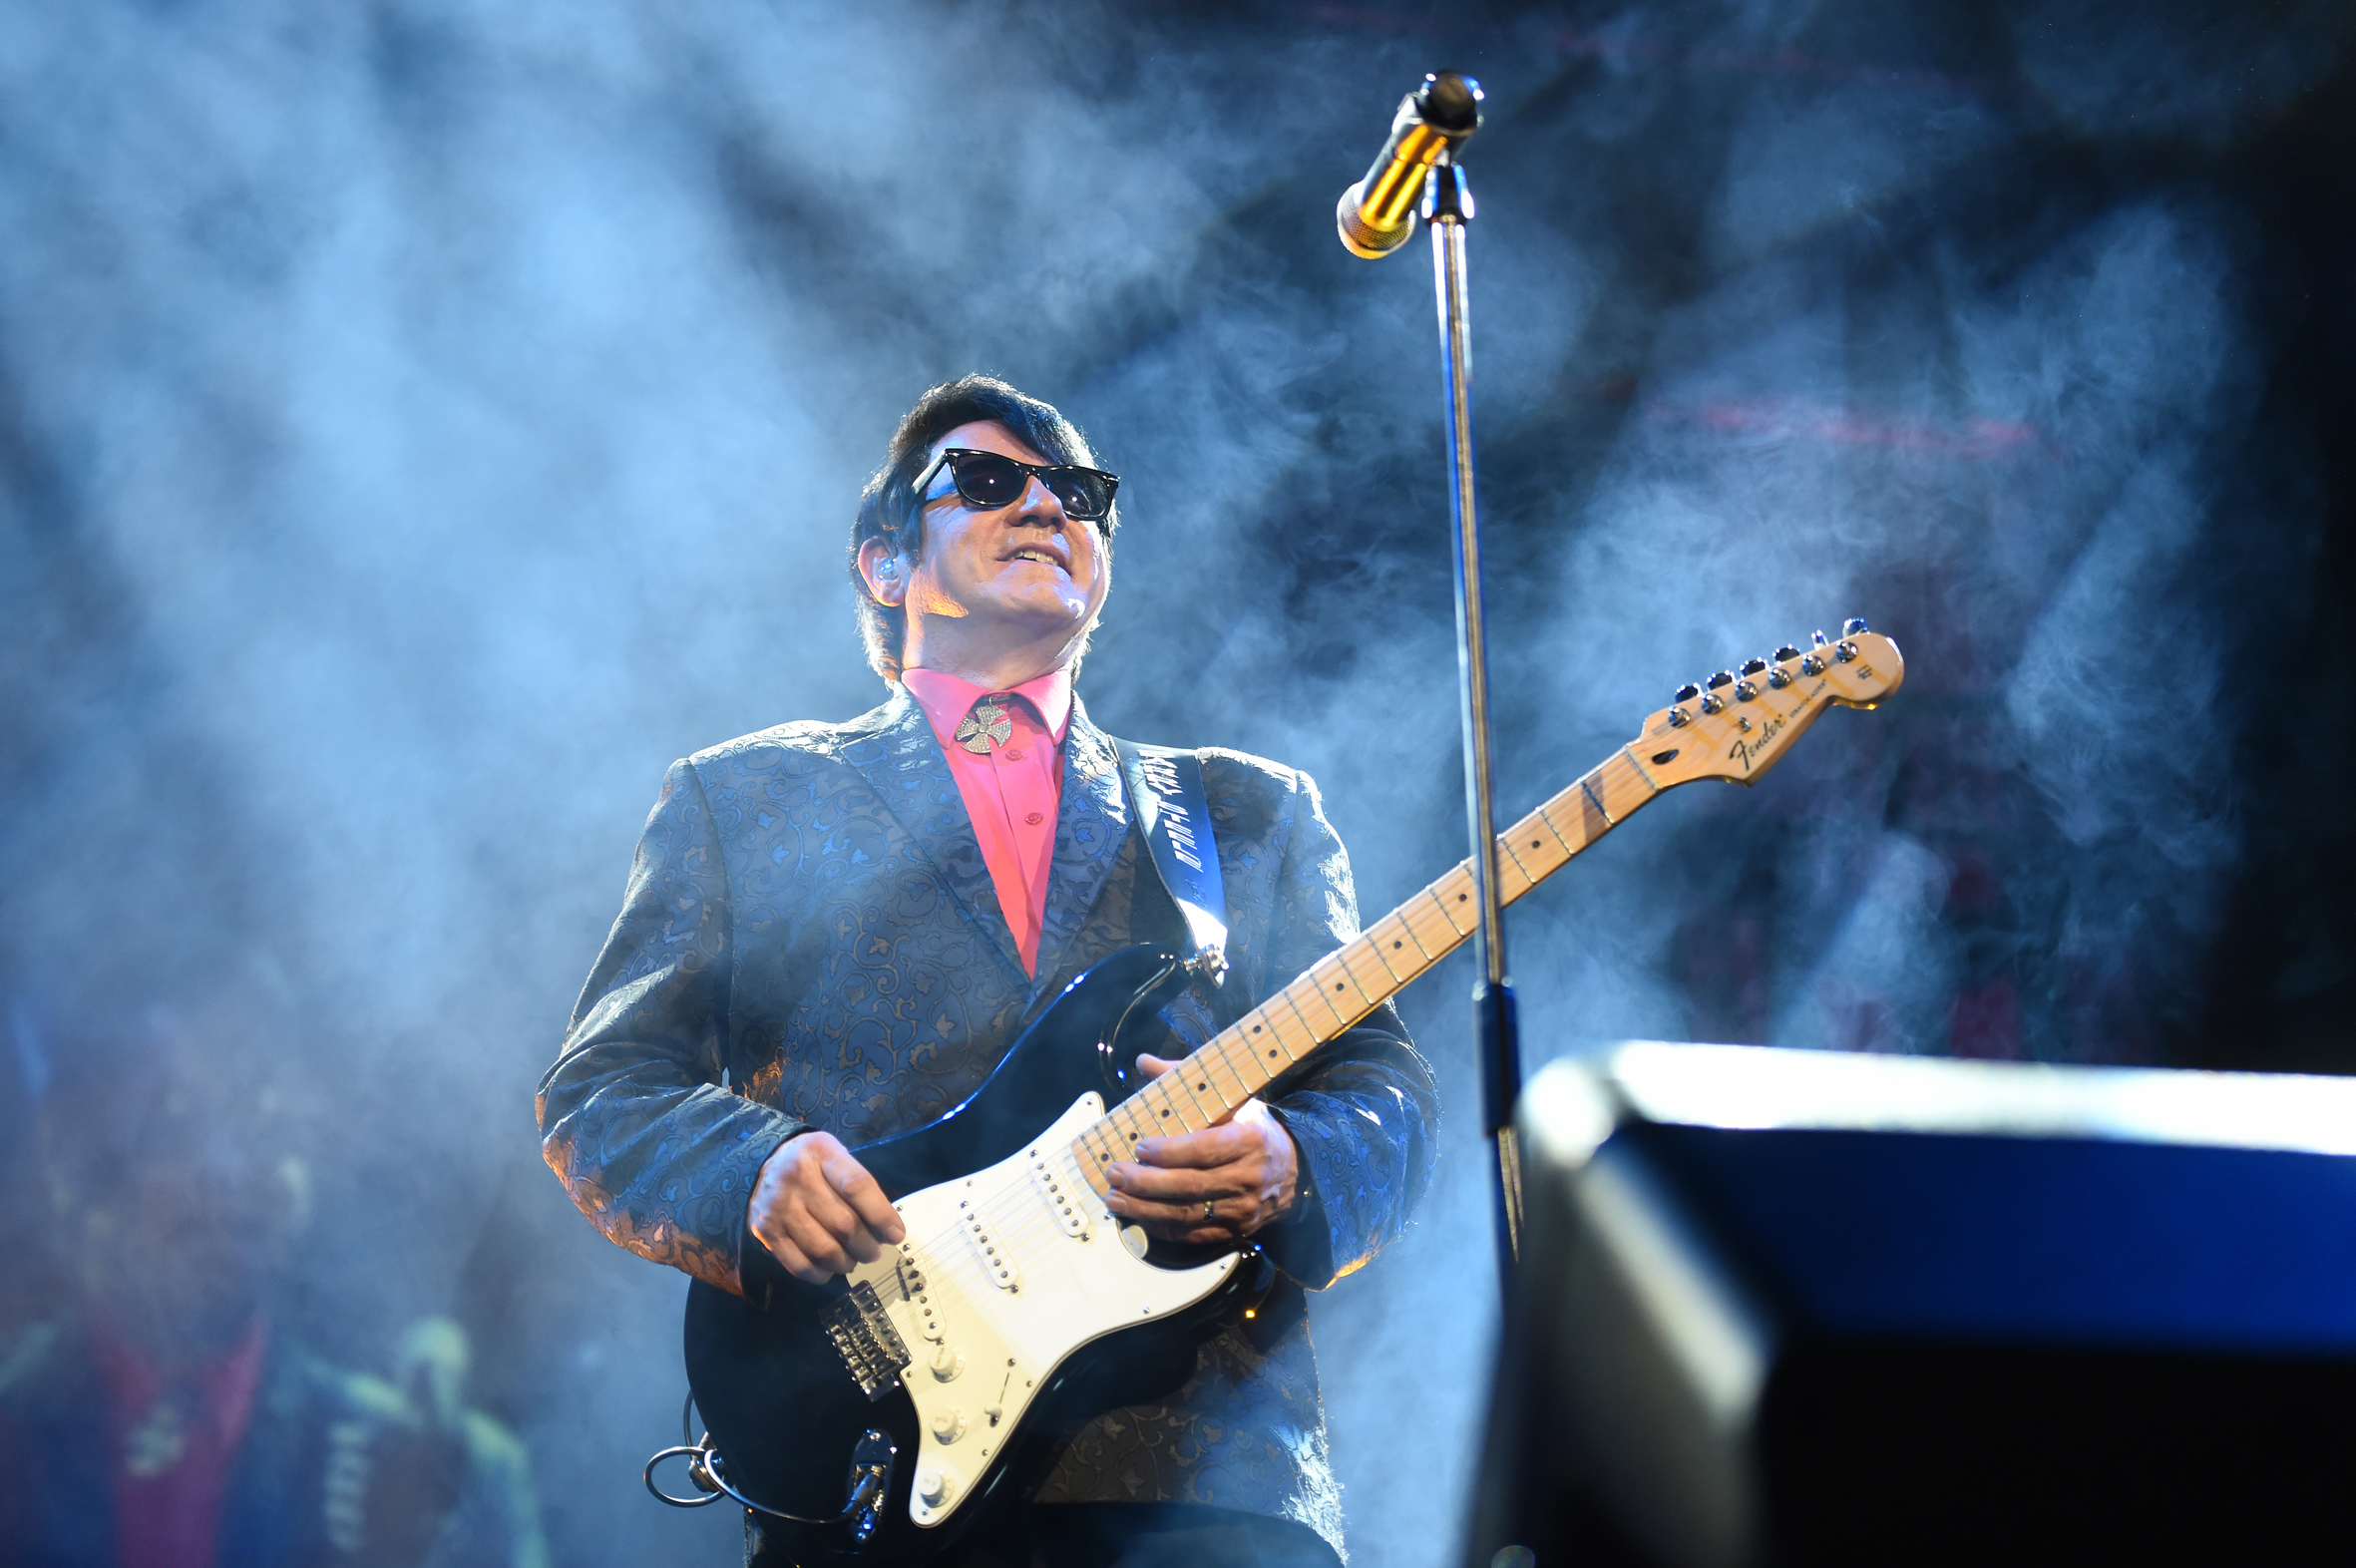 One of the world's leading vocalists playing homage to legend Roy Orbison.